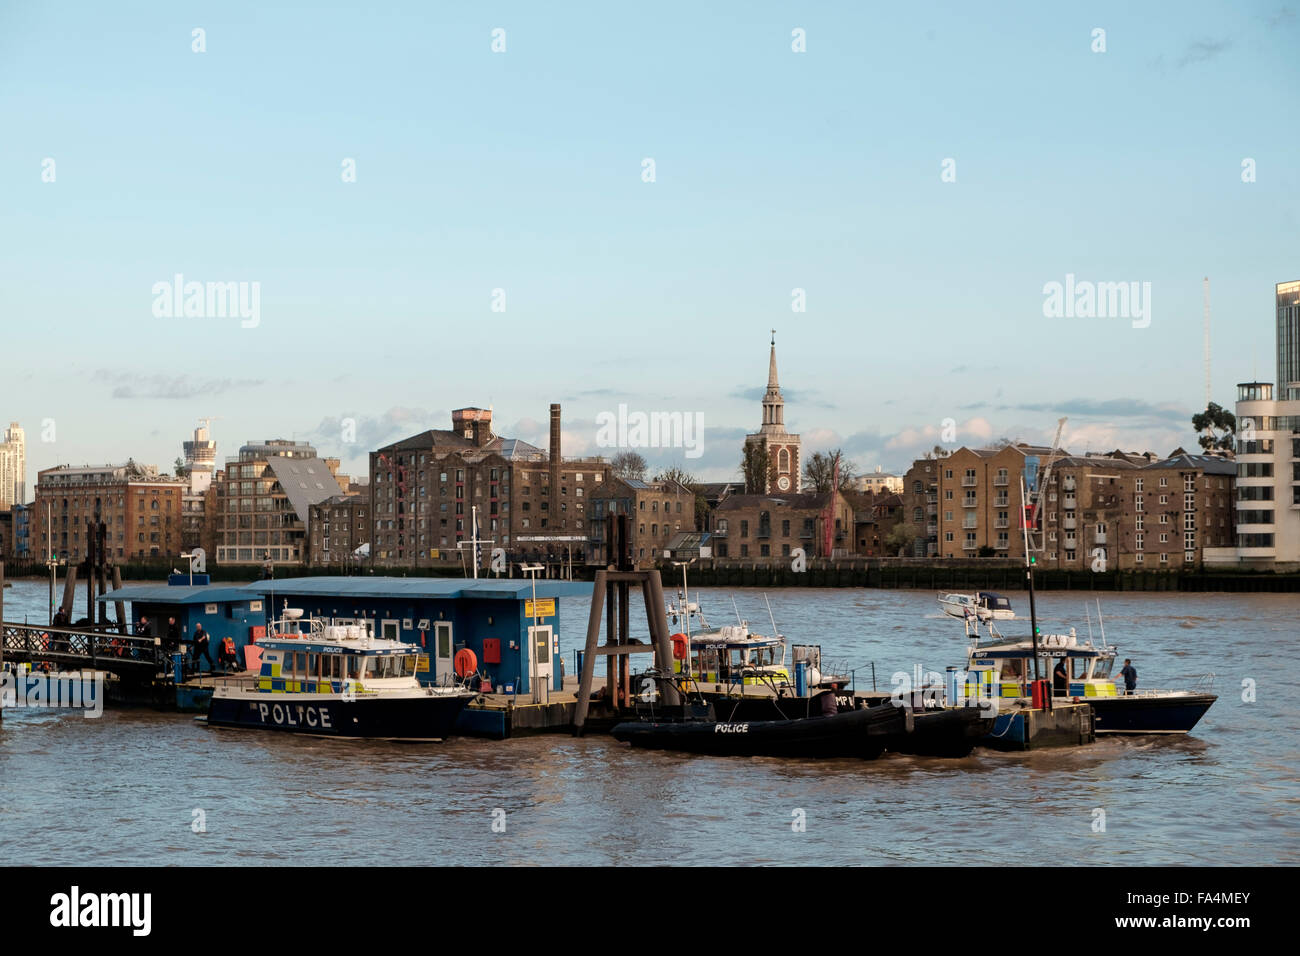 London, 25 November 2015: Wapping Pierhead - Metropolitan Police Marine Policing Unit on the River Thames - Stock Image